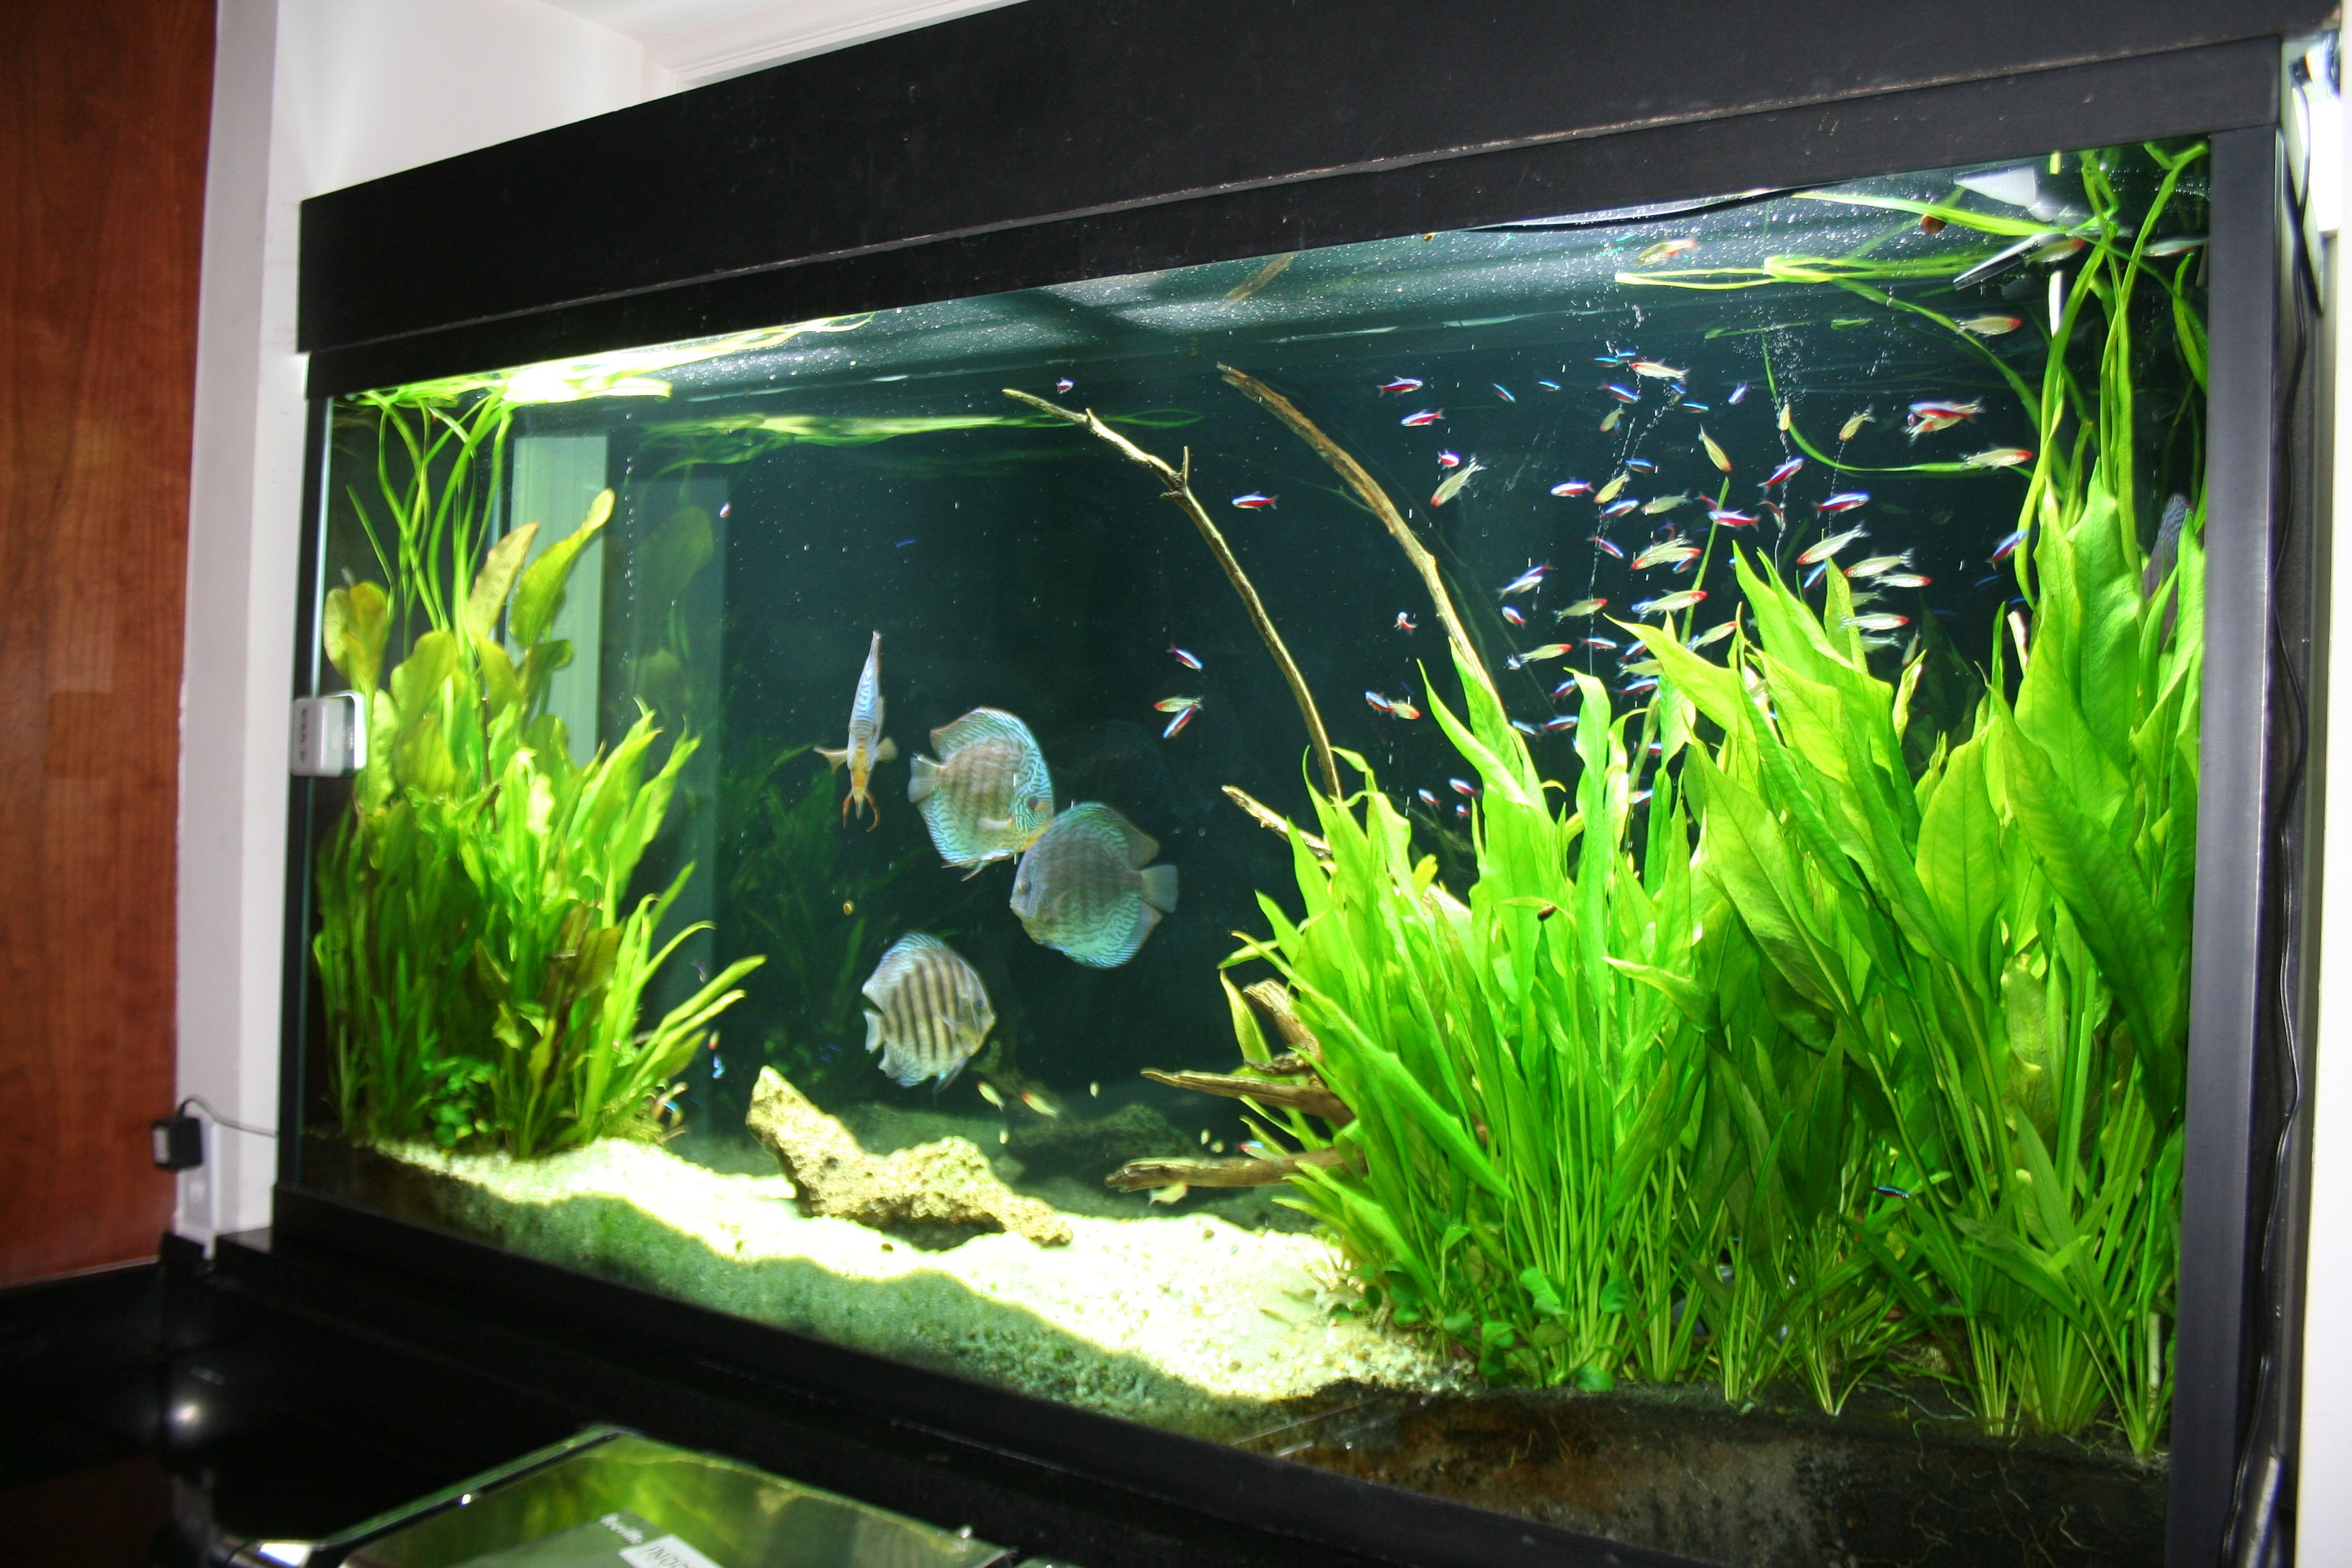 Freshwater aquarium fish photos - Freshwater Planted Fish Tanks Google Search